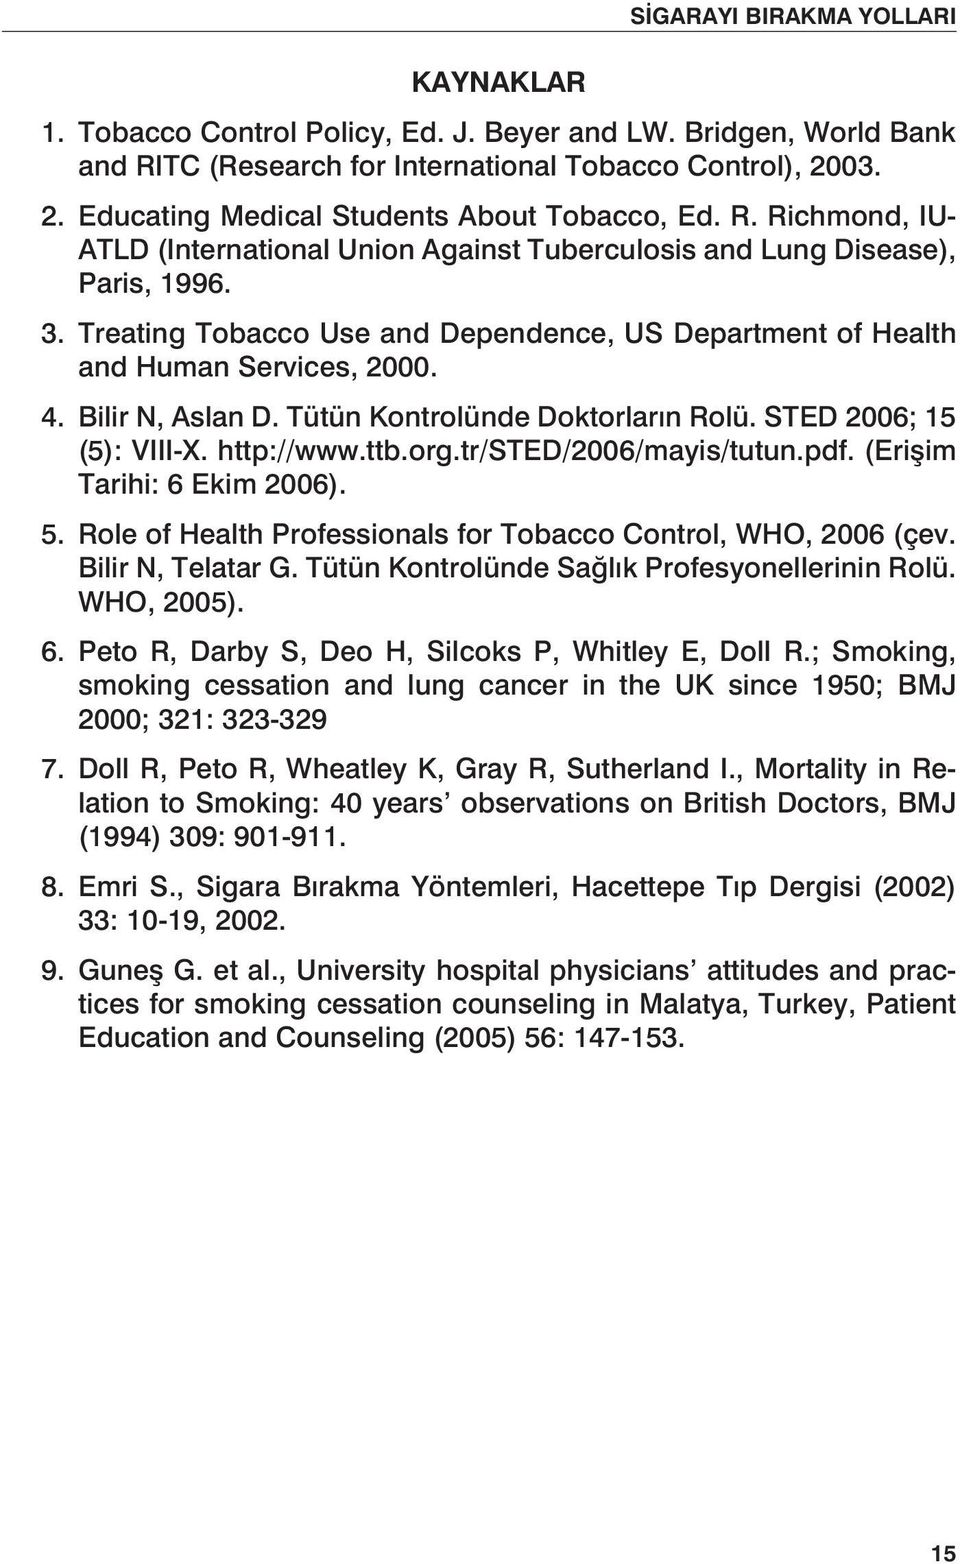 Treating Tobacco Use and Dependence, US Department of Health and Human Services, 2000. 4. Bilir N, Aslan D. Tütün Kontrolünde Doktorların Rolü. STED 2006; 15 (5): VIII-X. http://www.ttb.org.